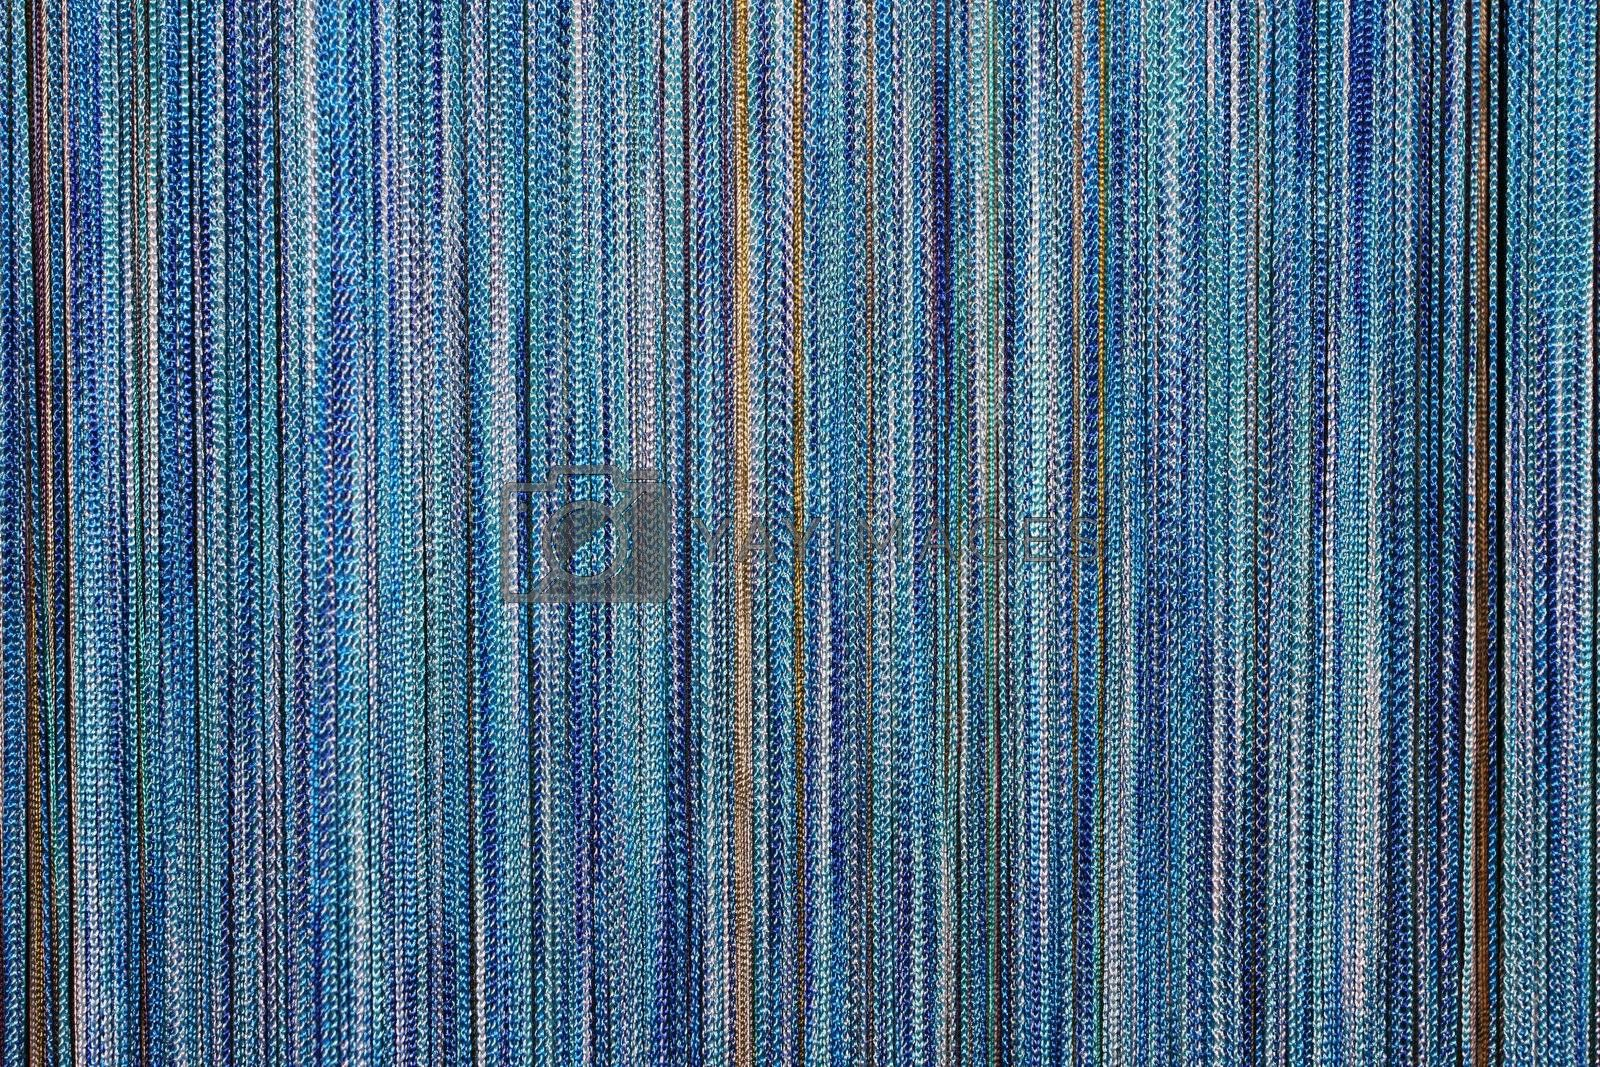 trendy blue background made of differently blue colored strings